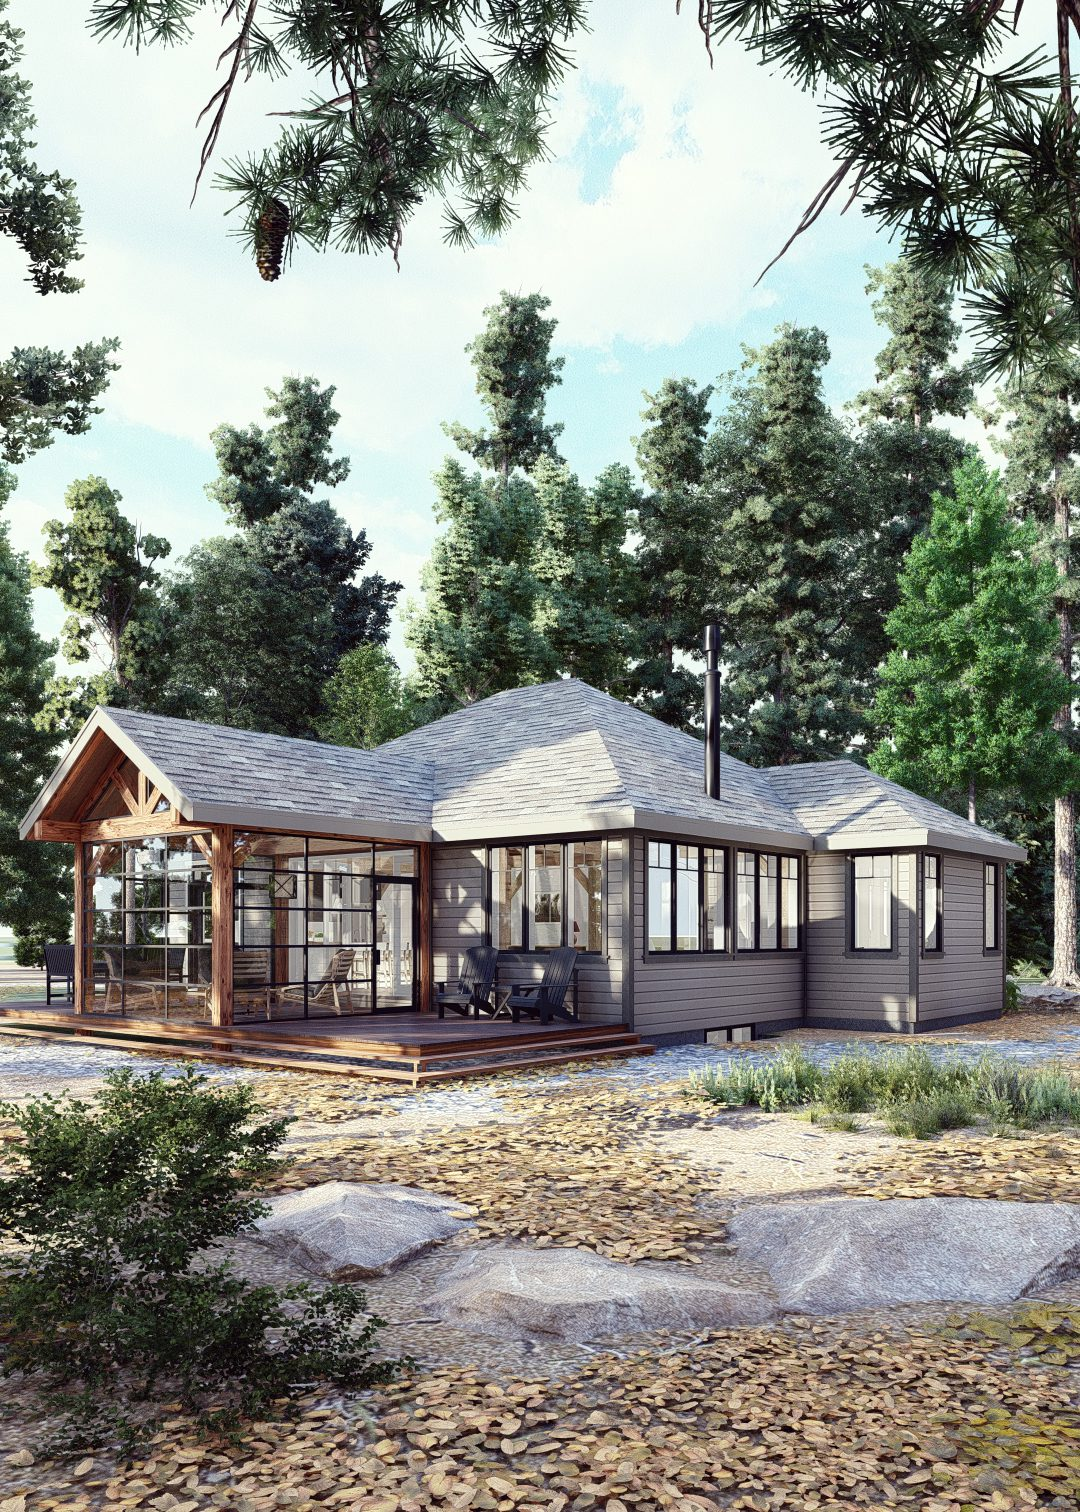 Normerica Timber Homes, Timber Frame, House Plans, The Herridge 3979, Exterior, Side, Front